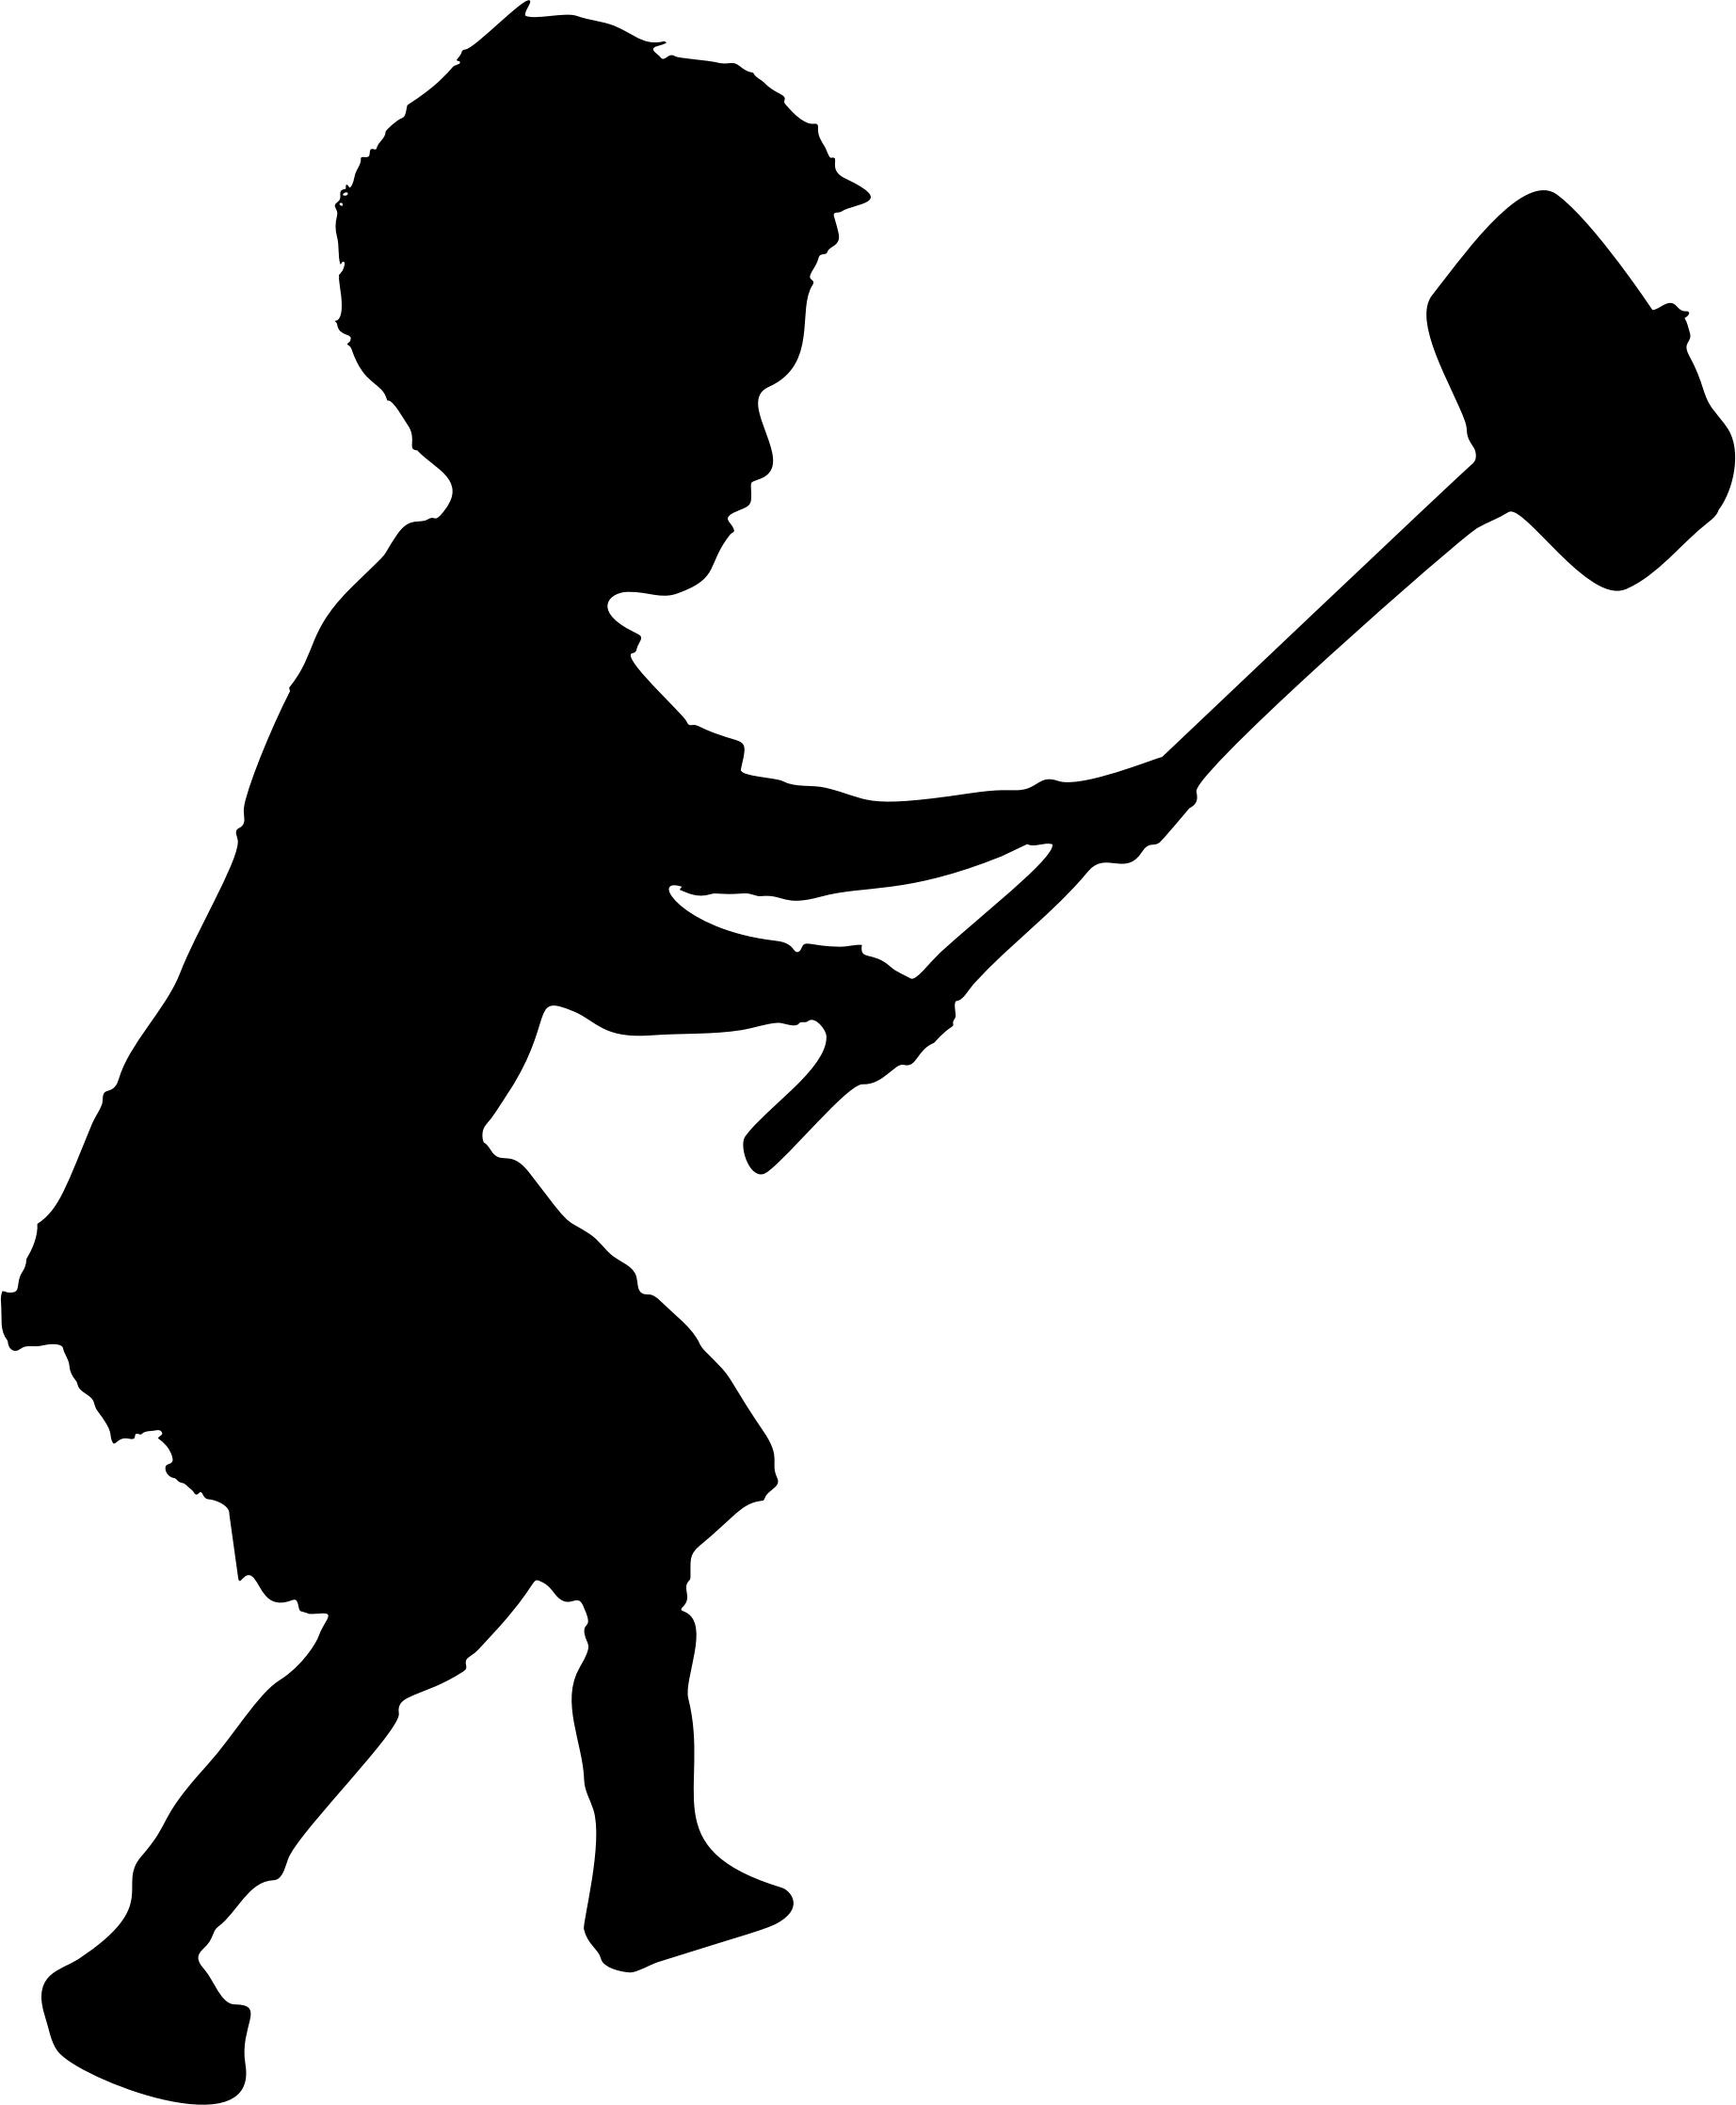 1844x2236 Banksy Child Sledgehammer Silhouette Icons Png